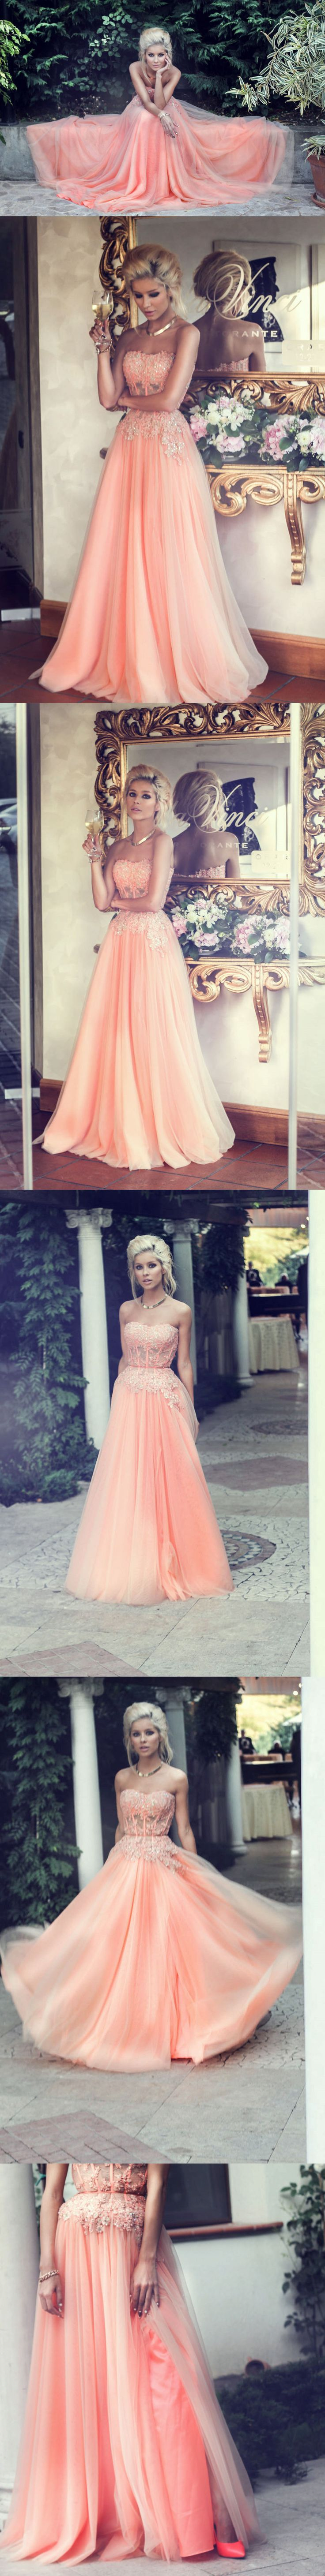 Diyouth.com Stunning Sweetheart Beaded Lace Appliques Pink Long Prom Dresses 2015,evening dresses 2015,pink prom dresses,sexy prom dresses,lace prom dresses,beaded evening party dress